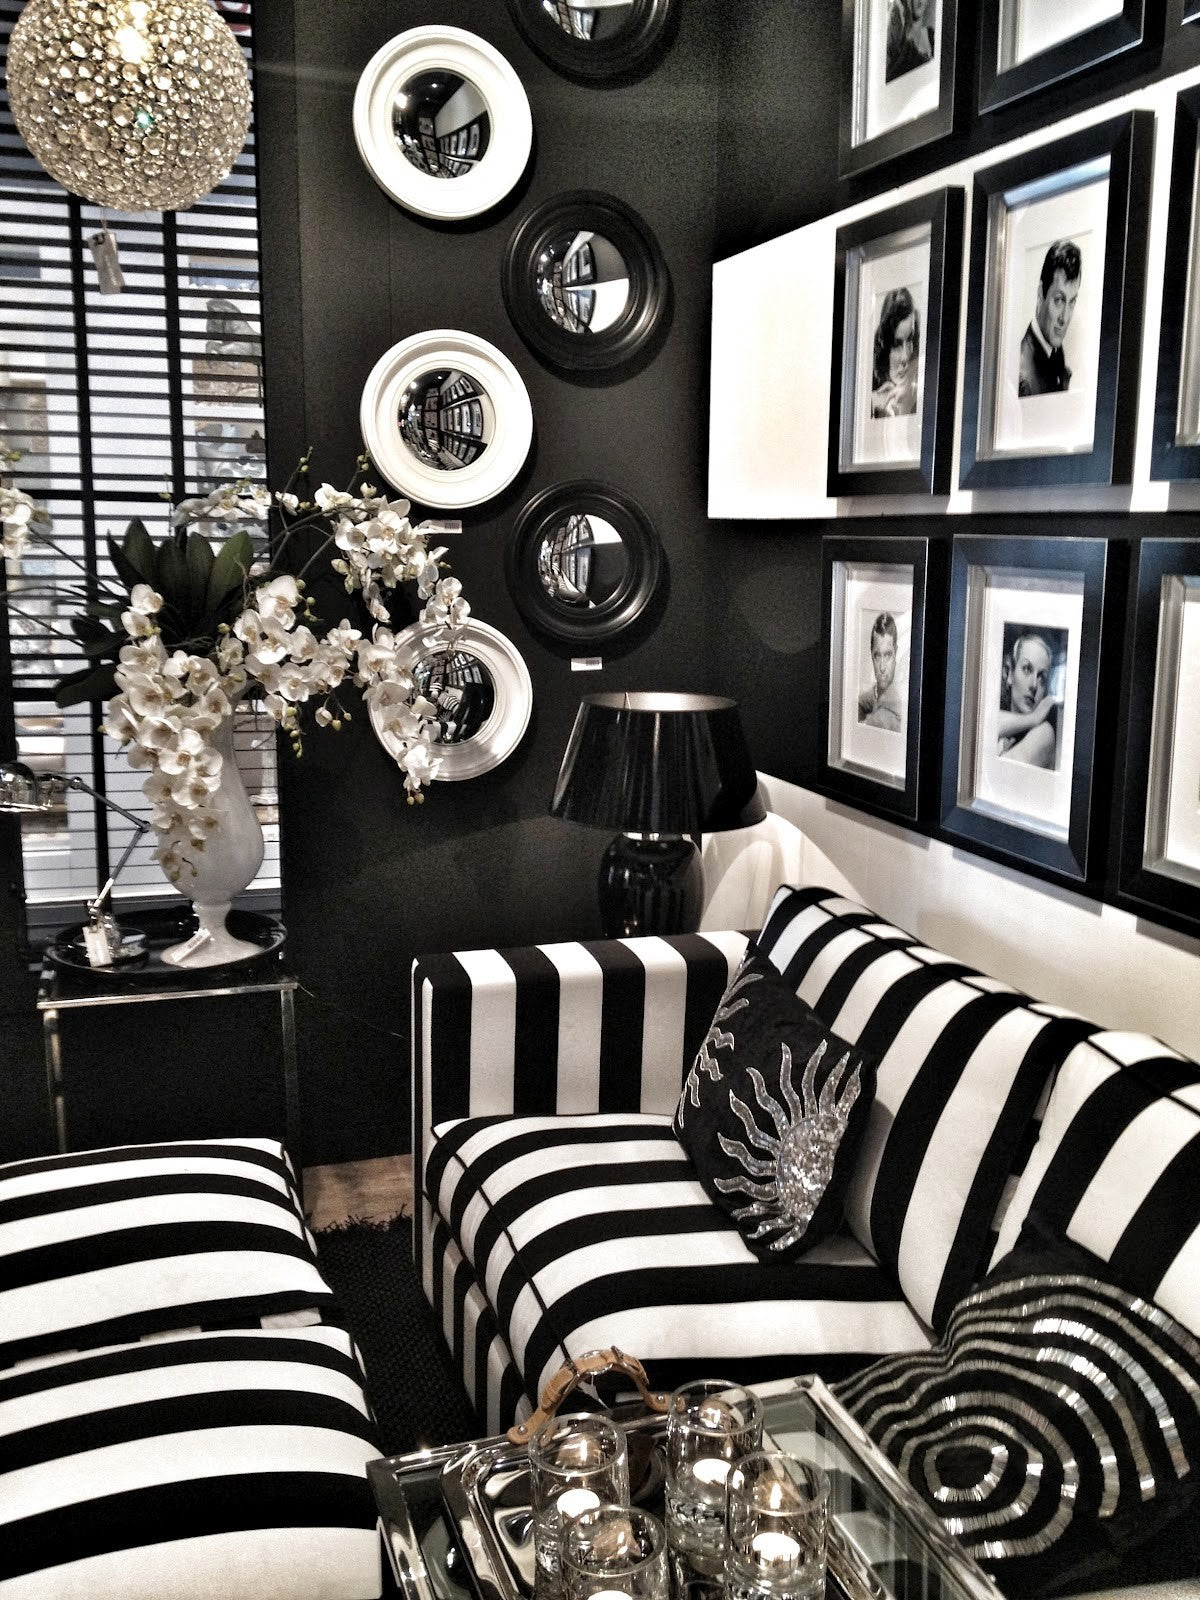 Black and white living room, with striped sofa, and black and white 1940's actor photos on the black walls